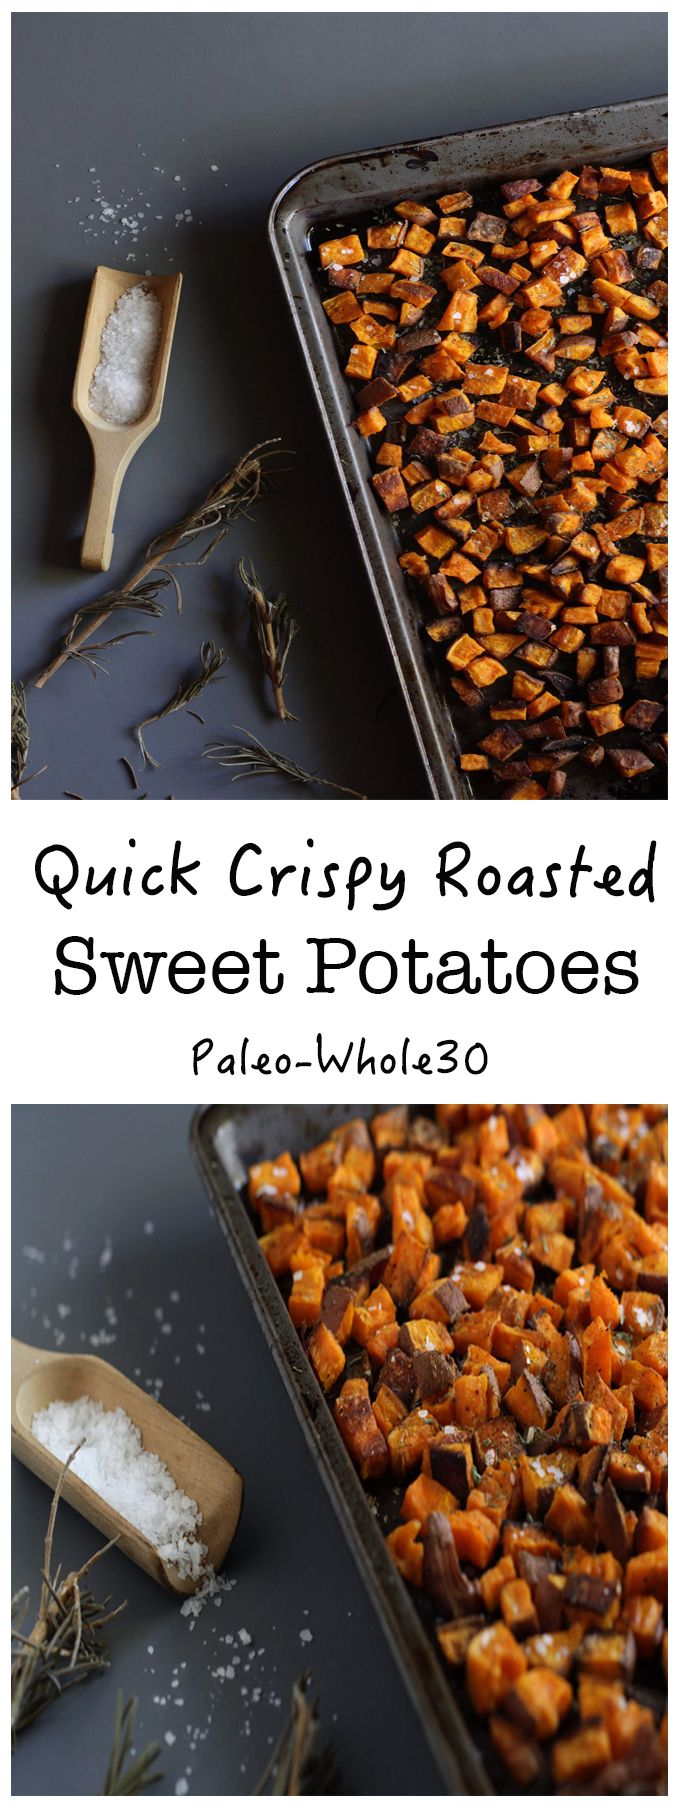 Quick Crispy Roasted Sweet Potatoes - The Paleo Paparazzi